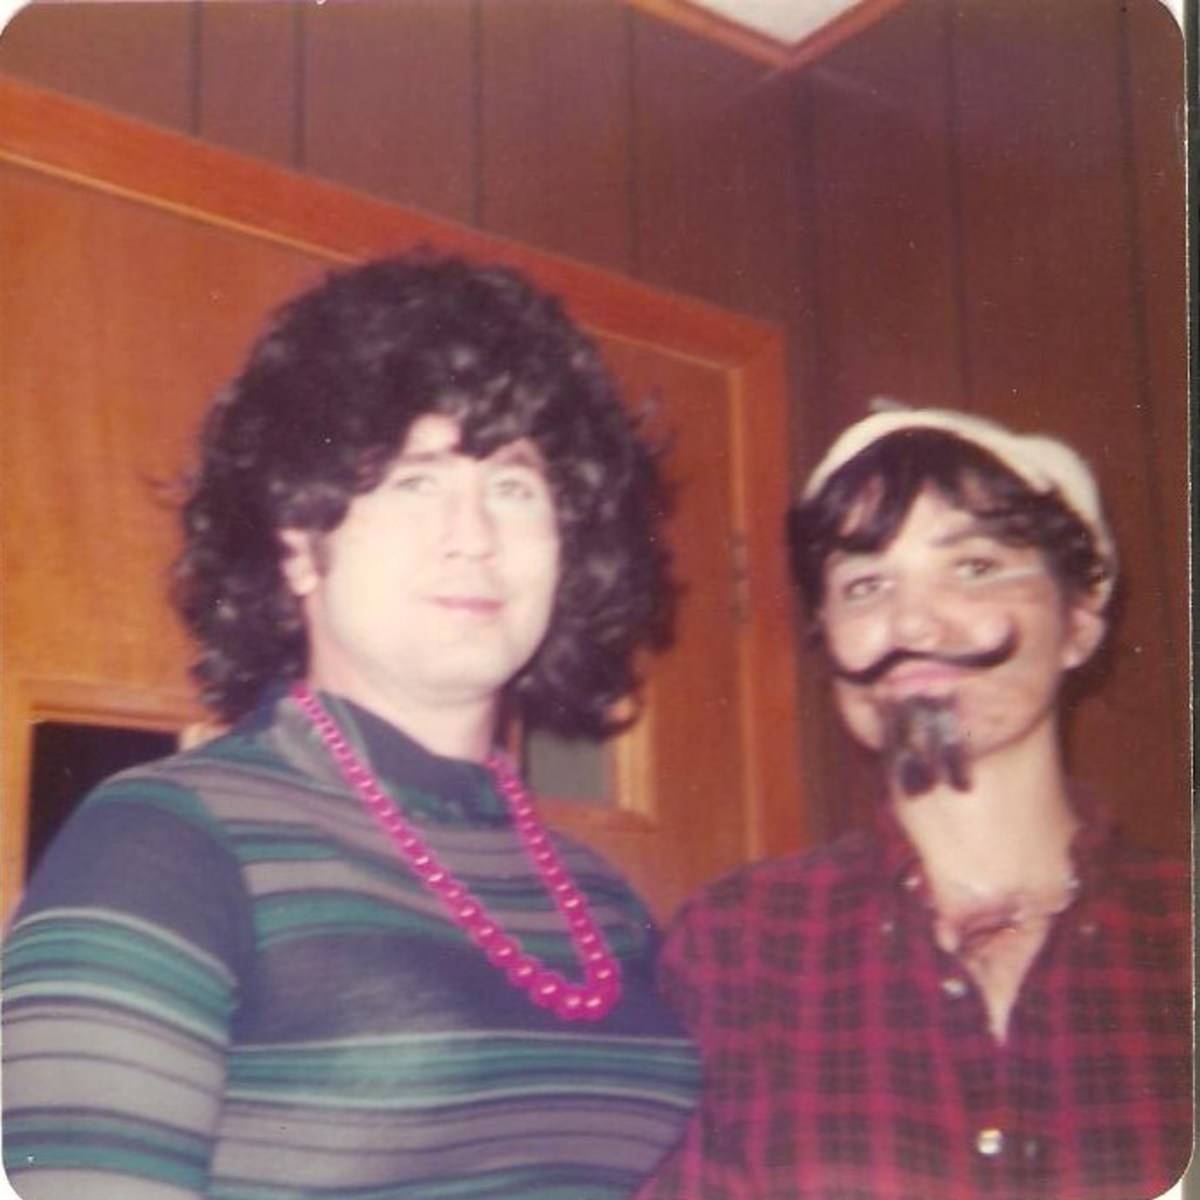 Cross-dressers for Halloween. My dad is on the left and my mom is on the right. (Obviously.) 1976